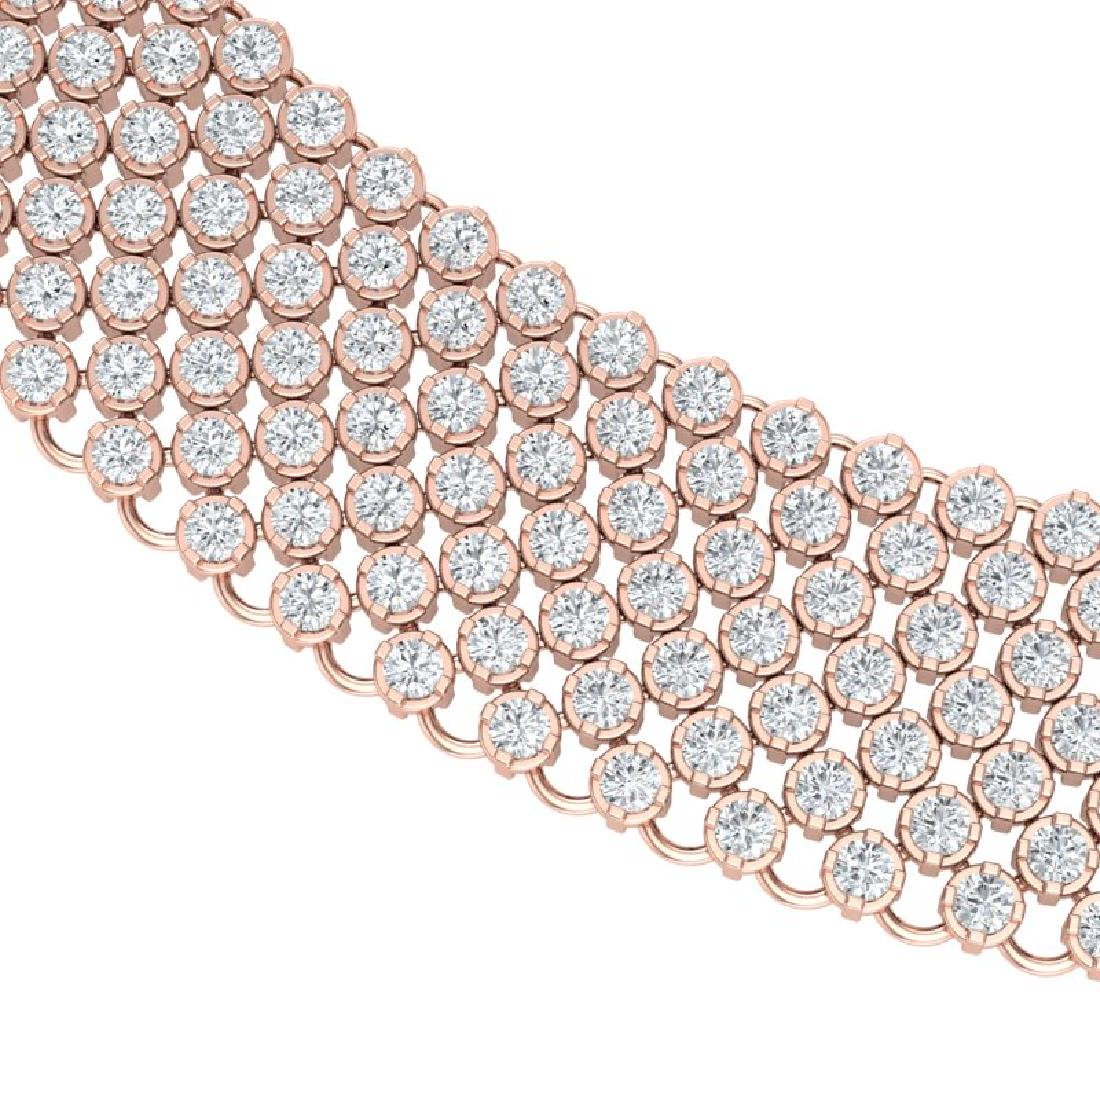 35 CTW Certified VS/SI Diamond Necklace 18K Rose Gold - 2